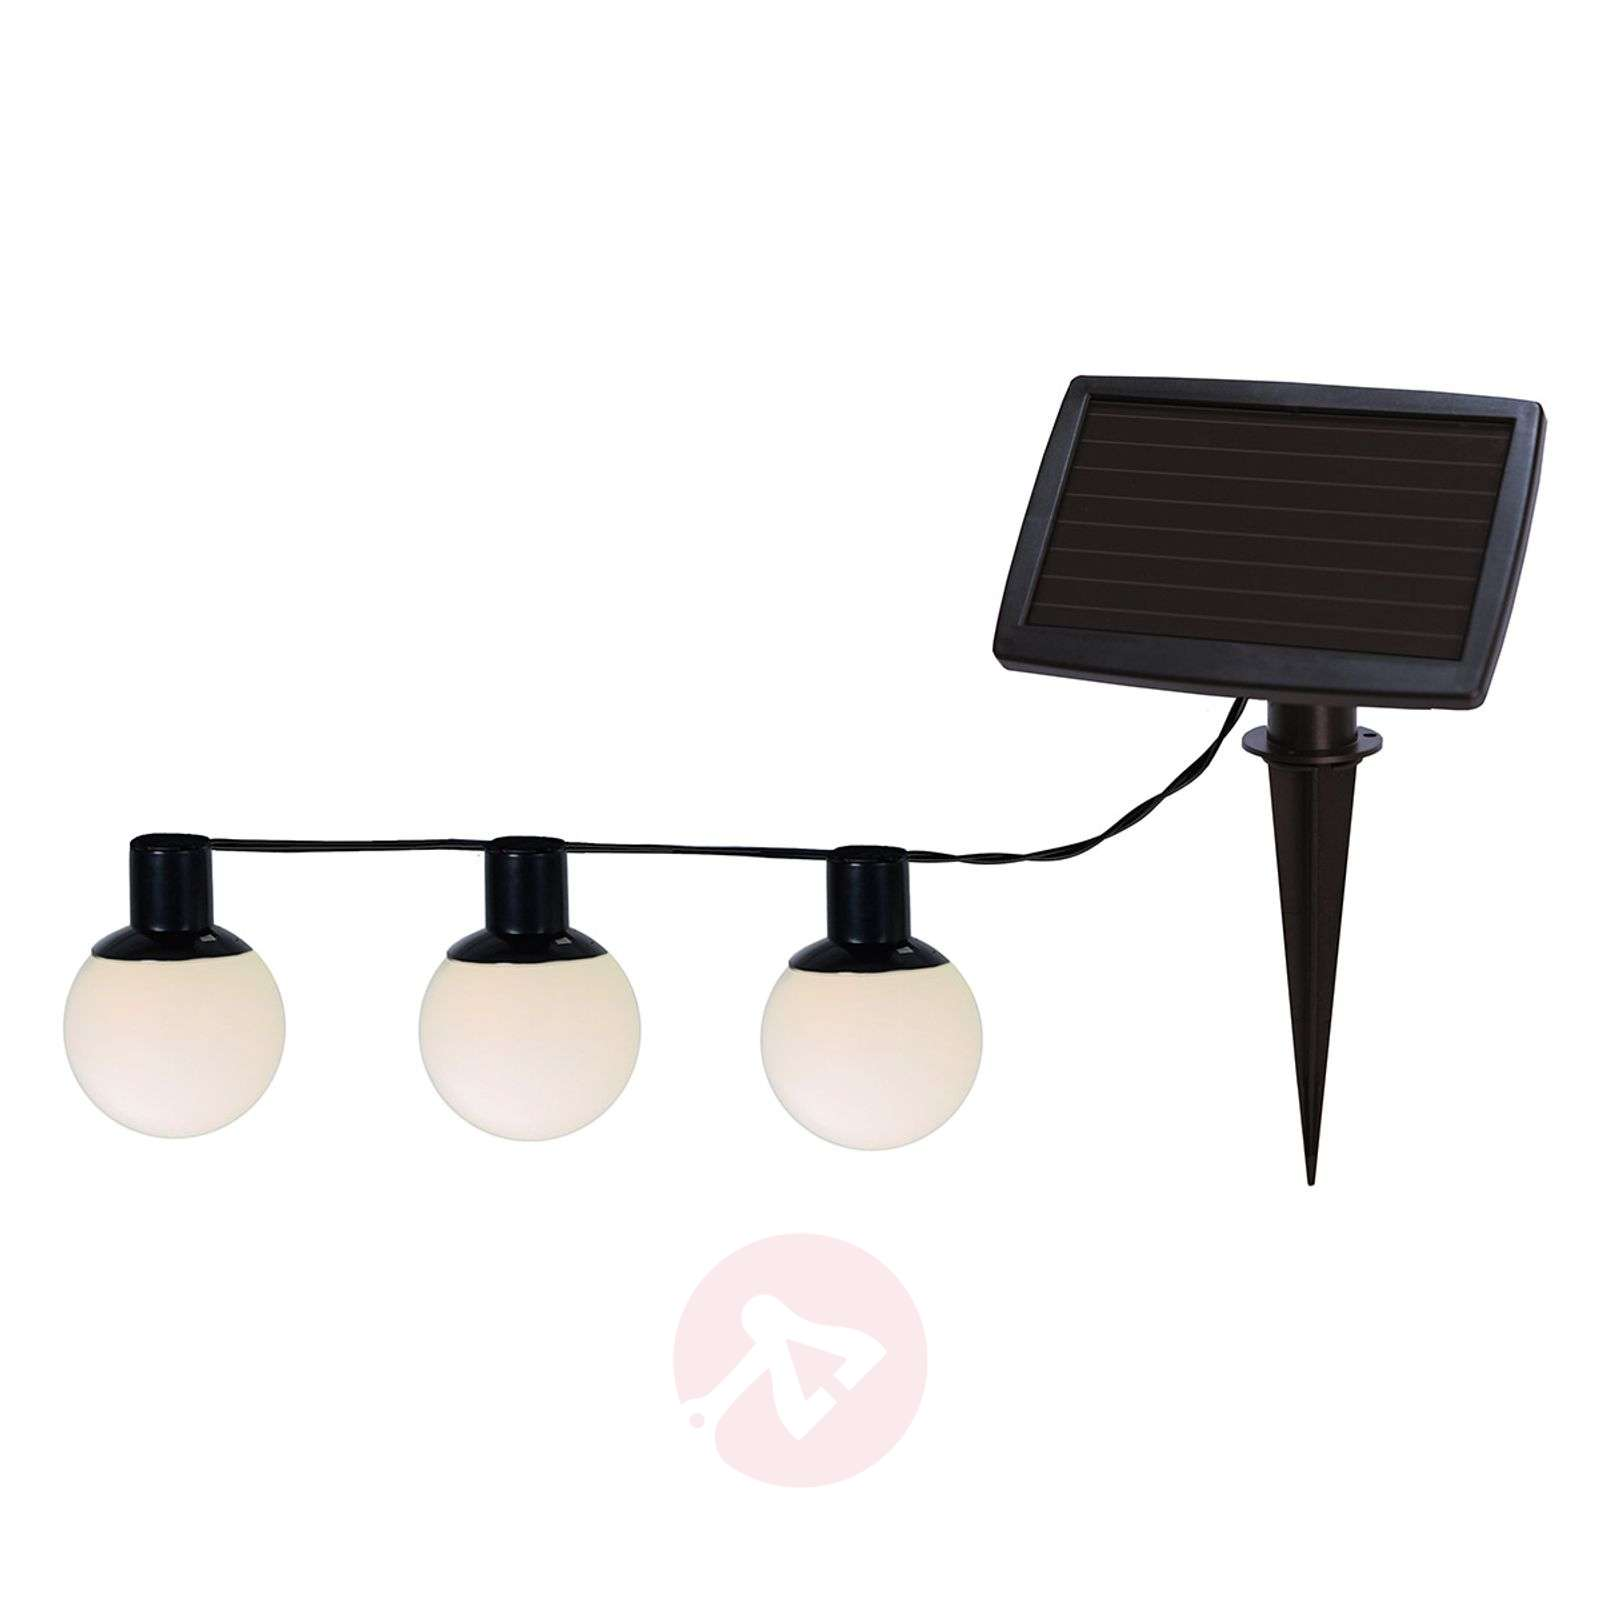 Guirlande lumineuse LED solaire Combo à 6 lampes-1522659-09